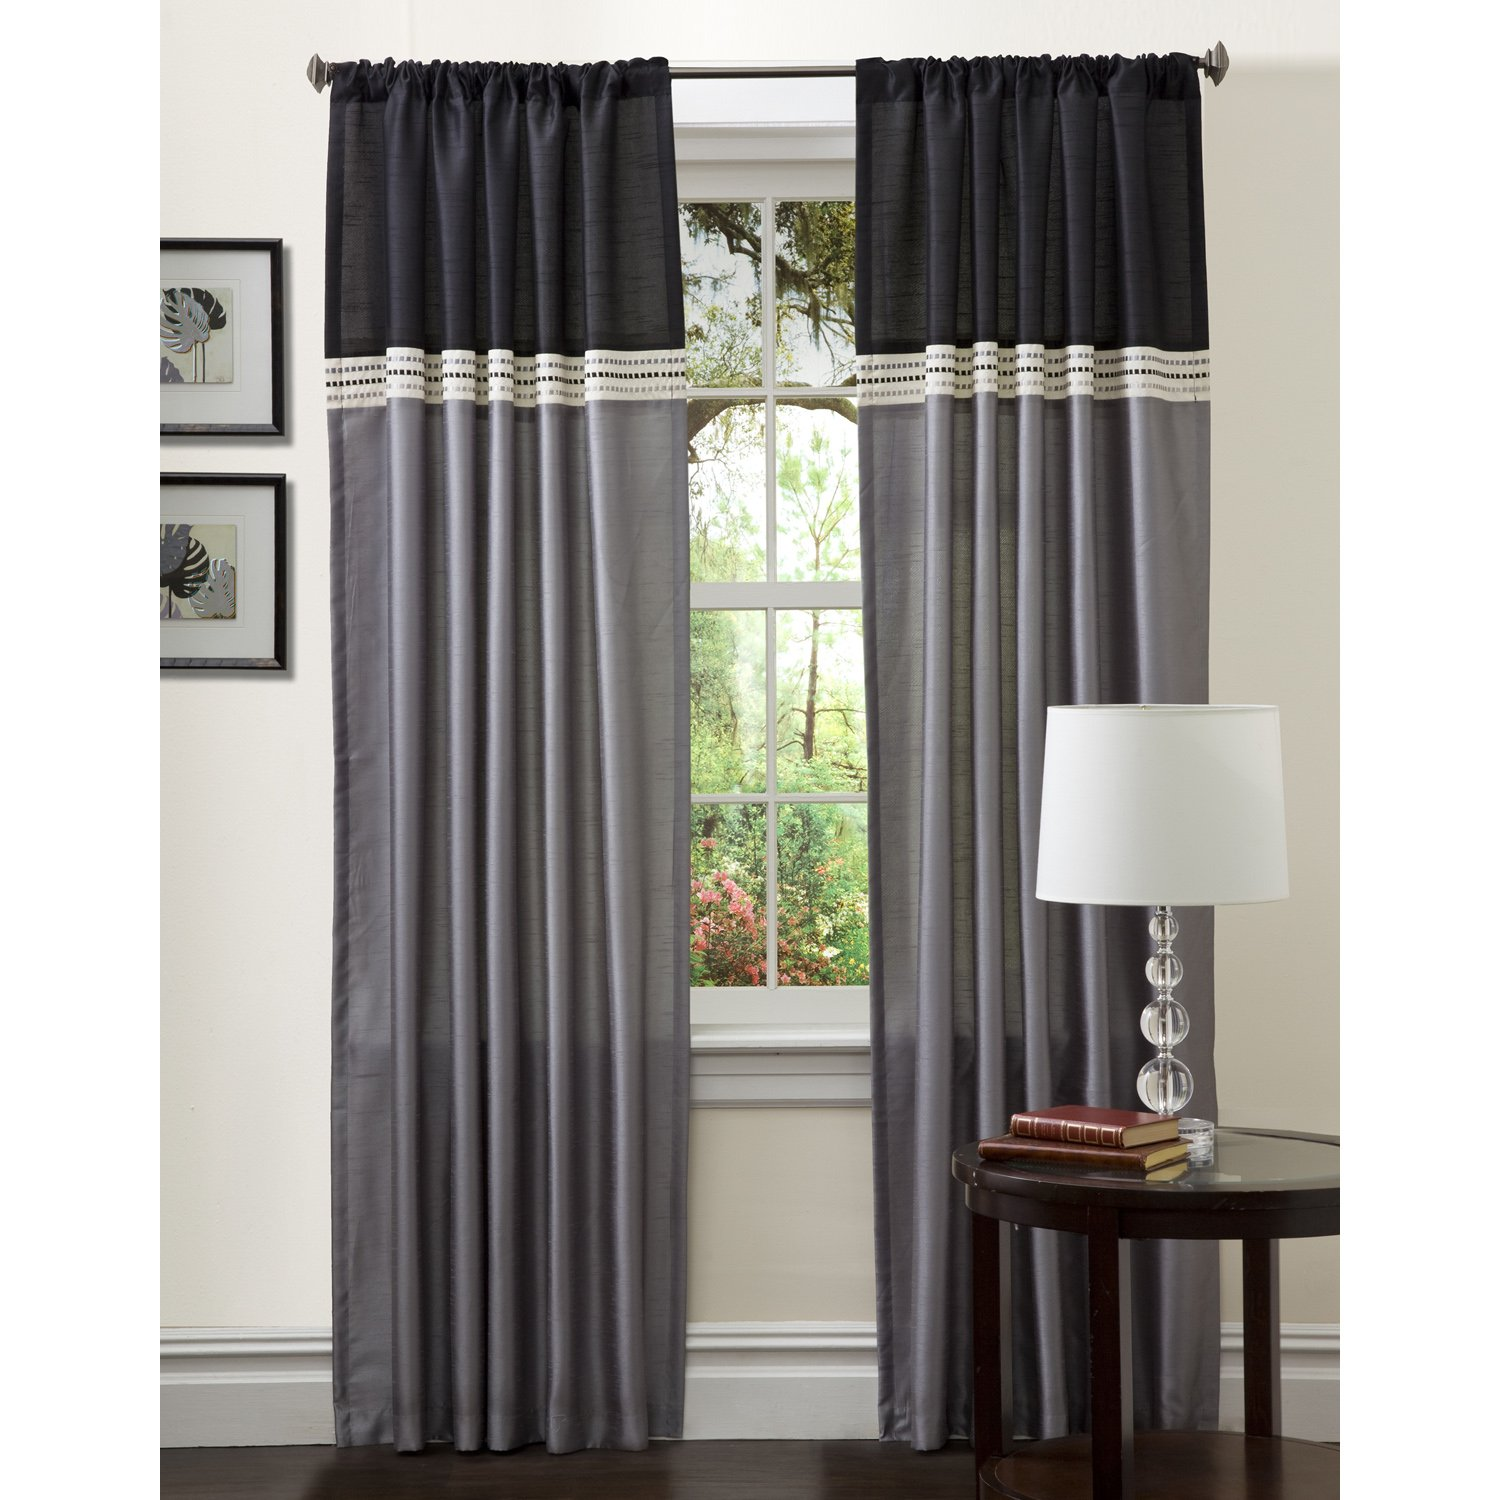 single faux home kitchen espresso drapes curtain com by panel eclipse dp silk fresno window amazon inch blackout